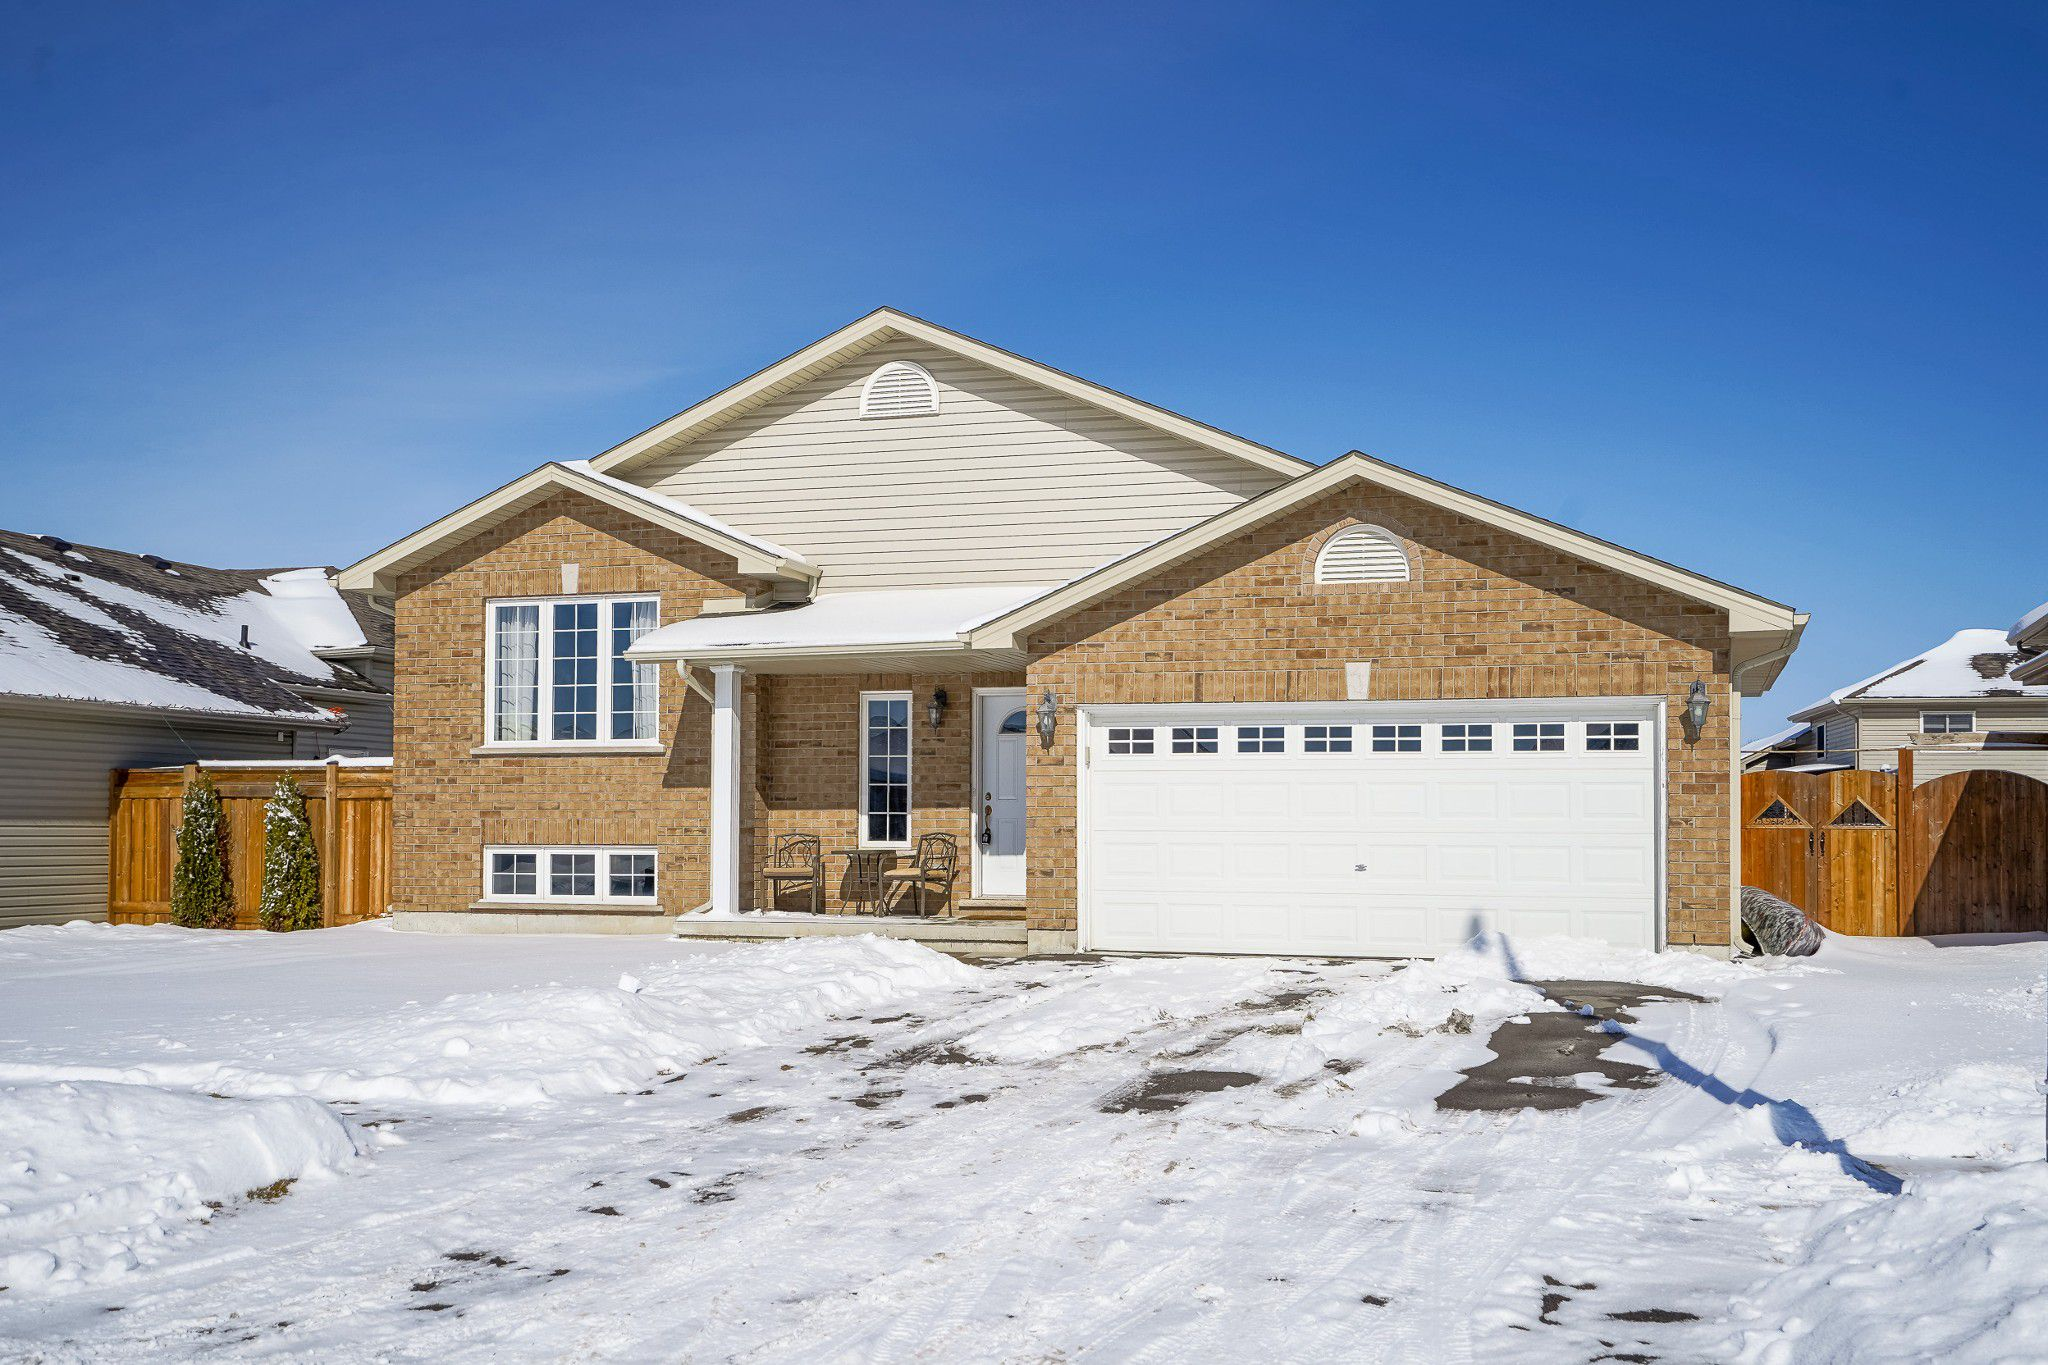 Main Photo: 11 Donald Crescent in Hgersville: House for sale : MLS®# H4047173